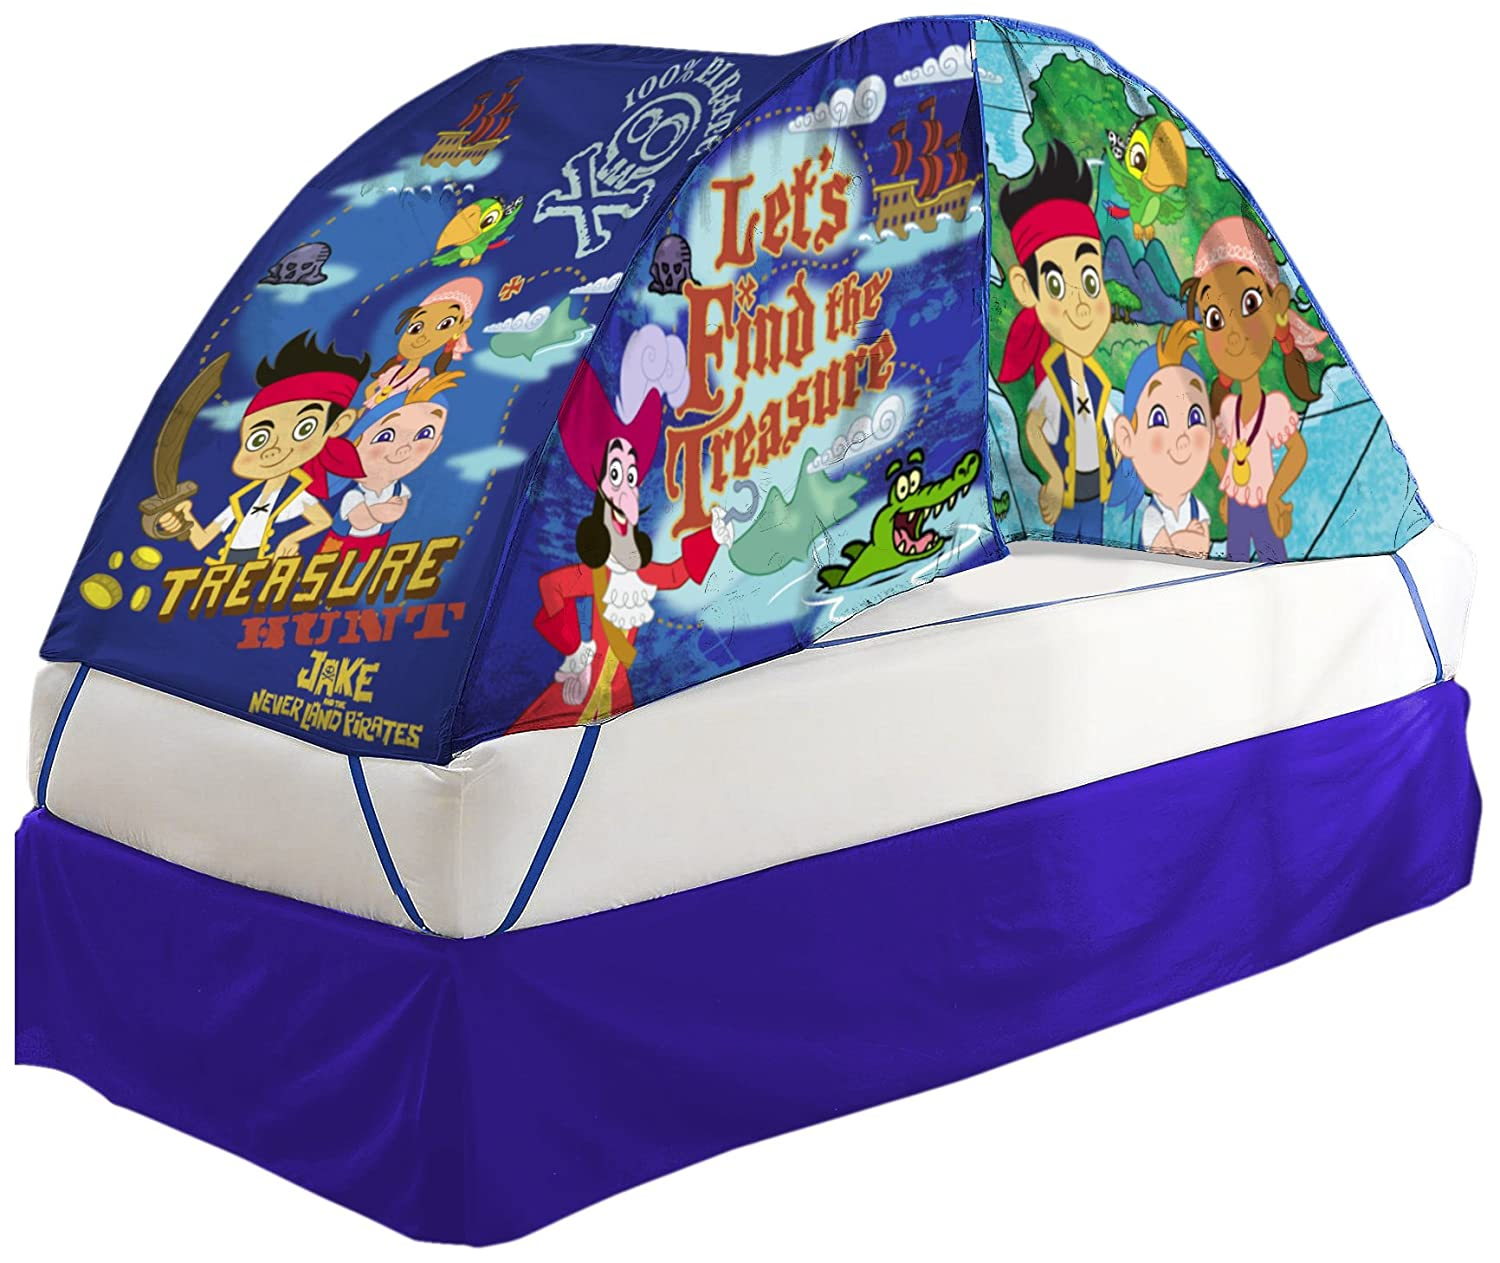 Amazon.com Disney Jake and The Pirates Bed Tent with Pushlight Assortment Toys u0026 Games  sc 1 st  Amazon.com & Amazon.com: Disney Jake and The Pirates Bed Tent with Pushlight ...